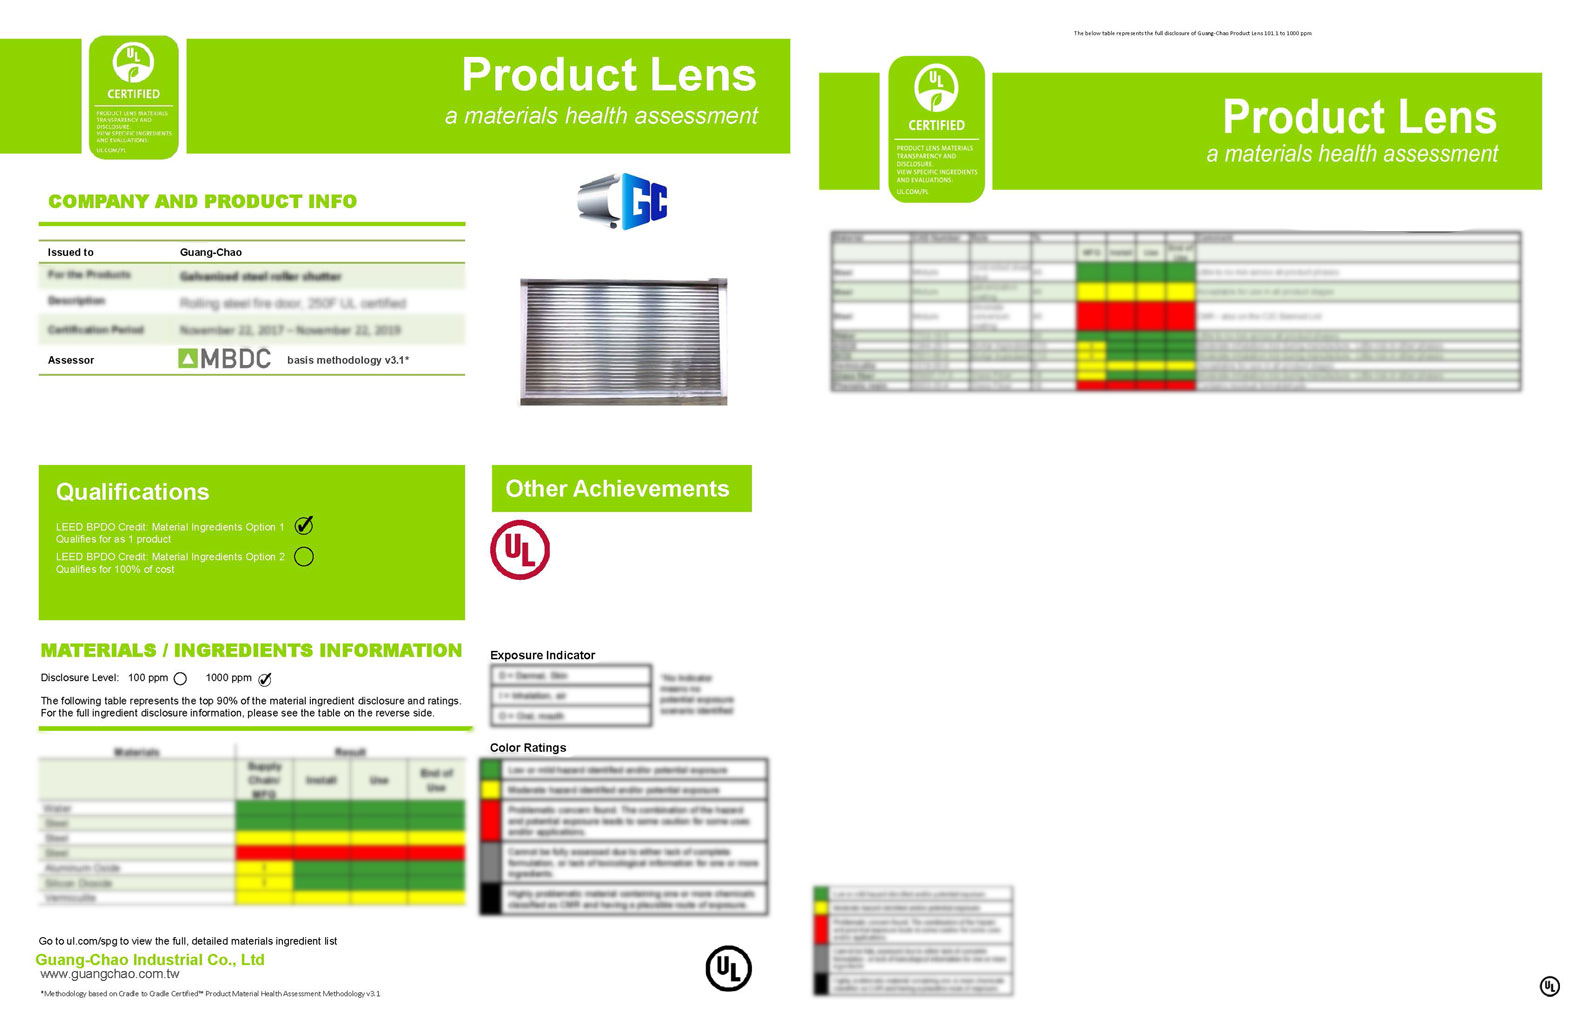 UL-Product-Lens-Certification-I